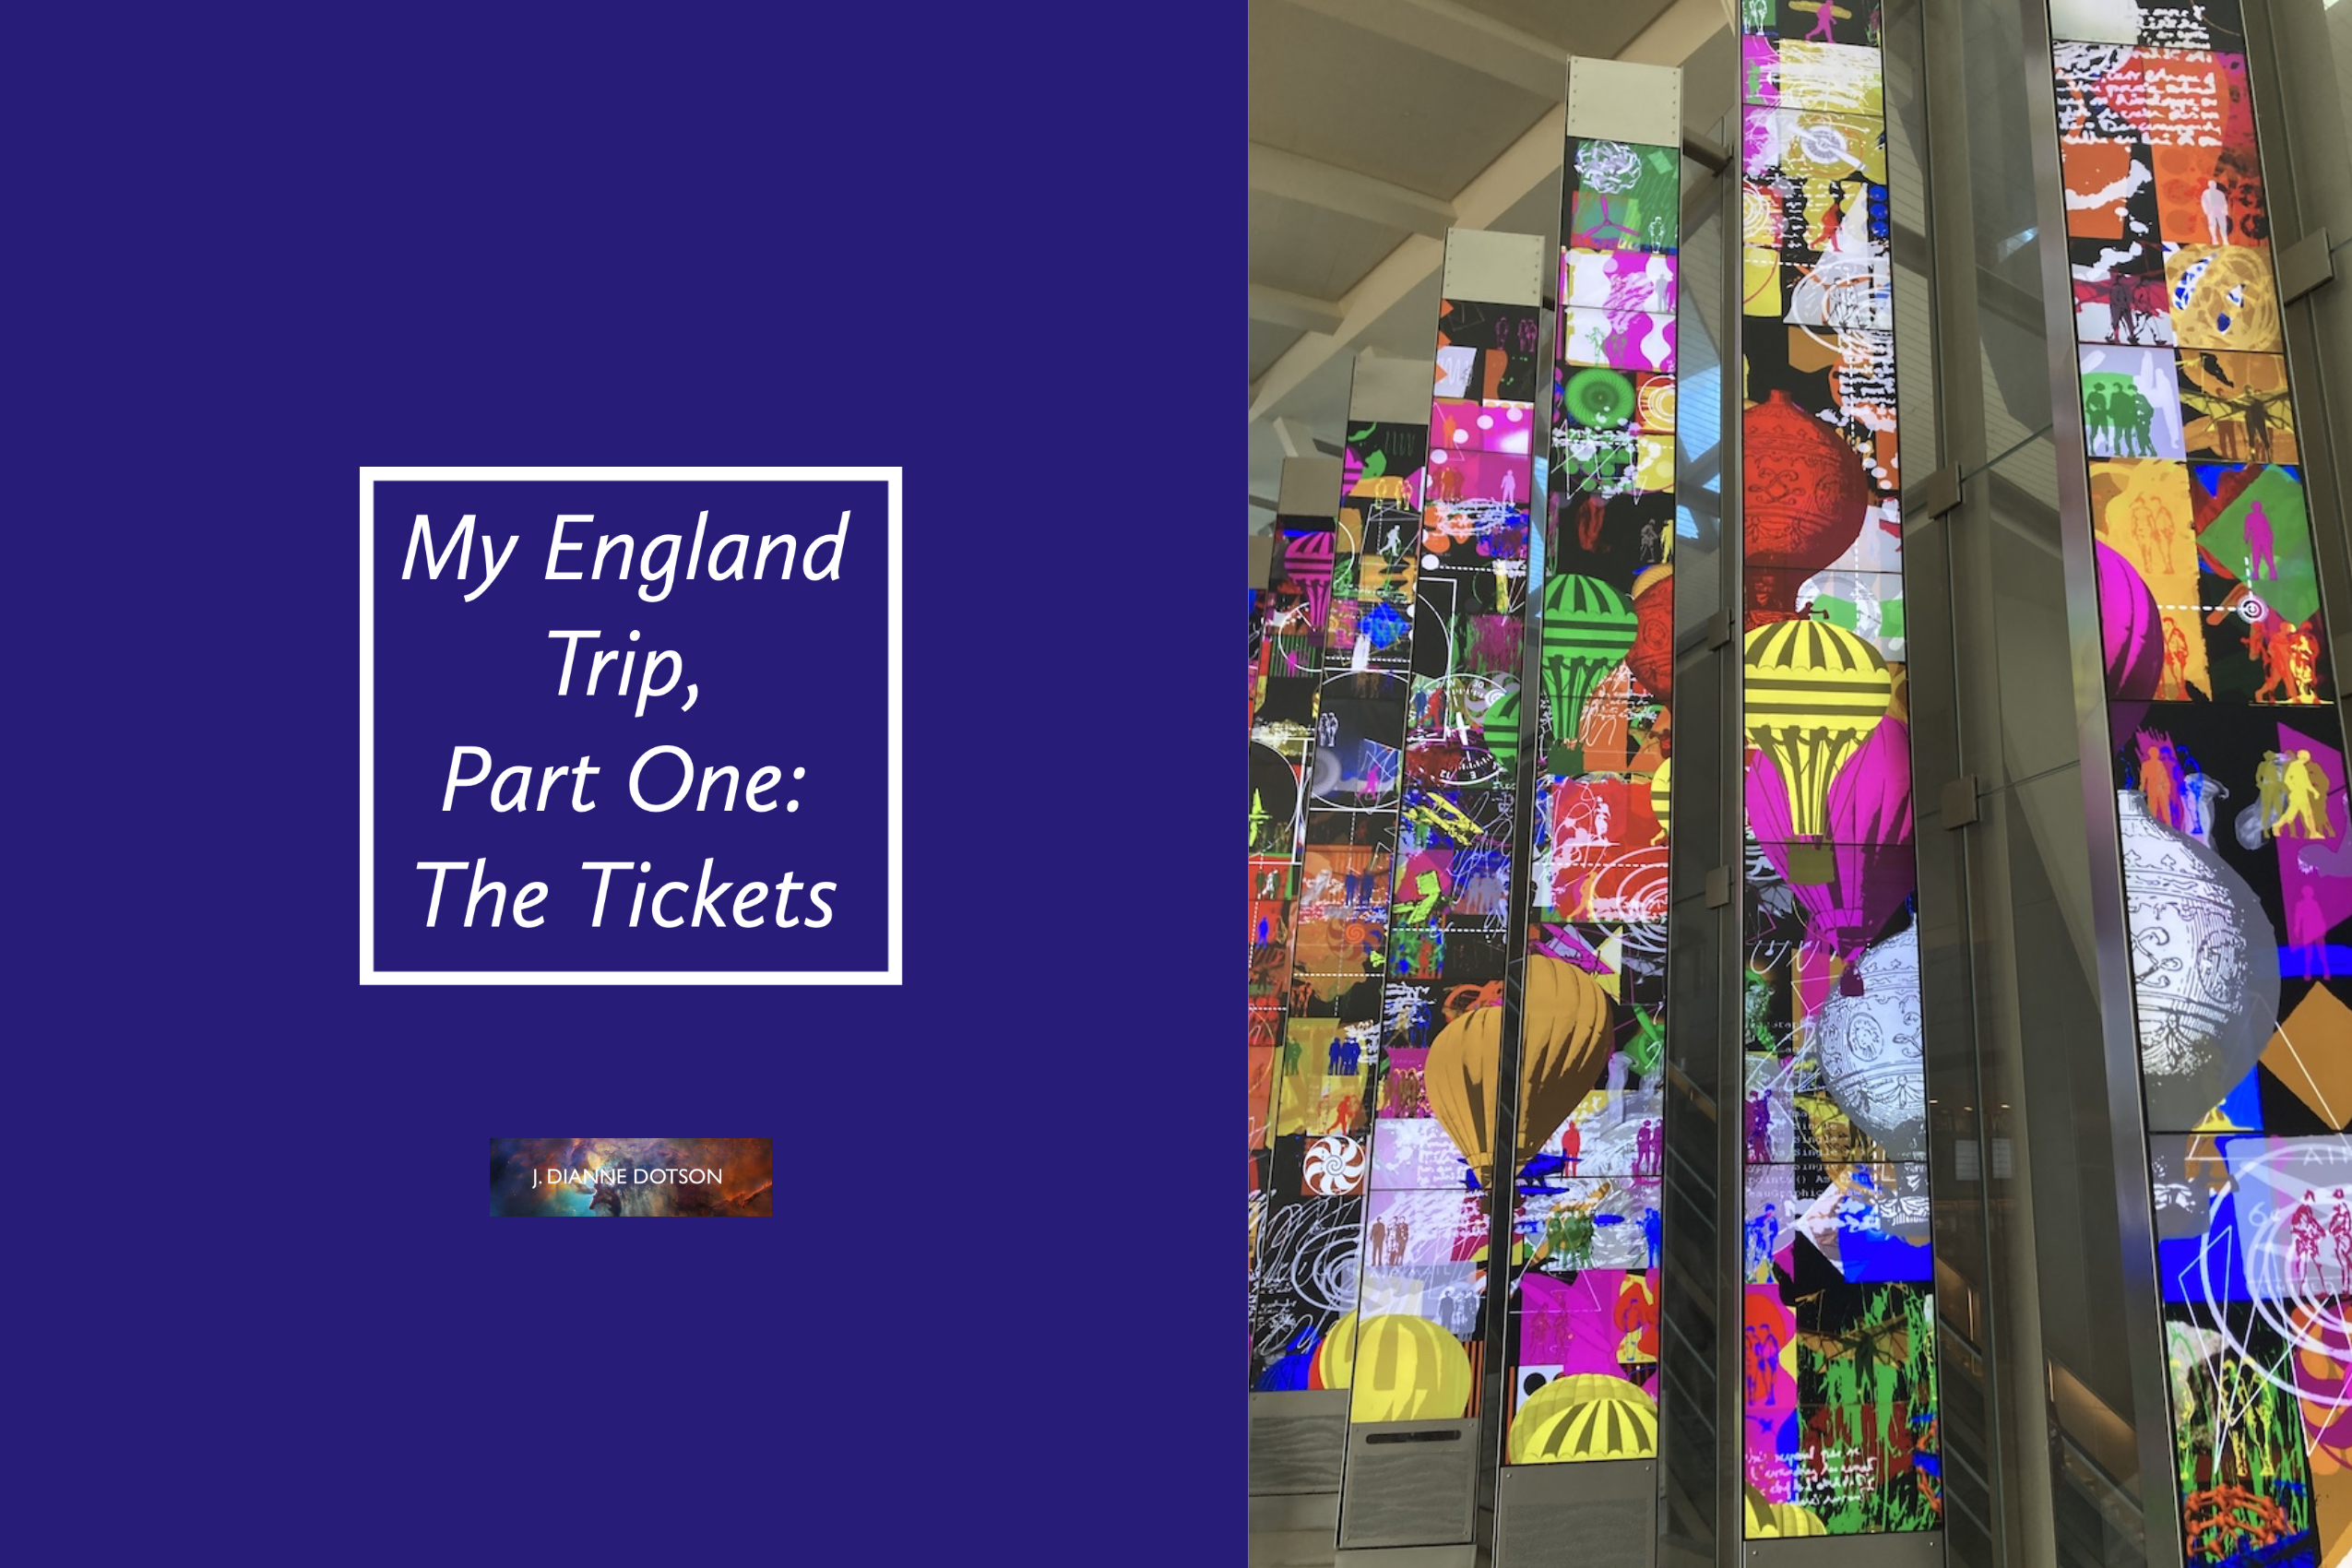 My England Trip, Part One: The Tickets